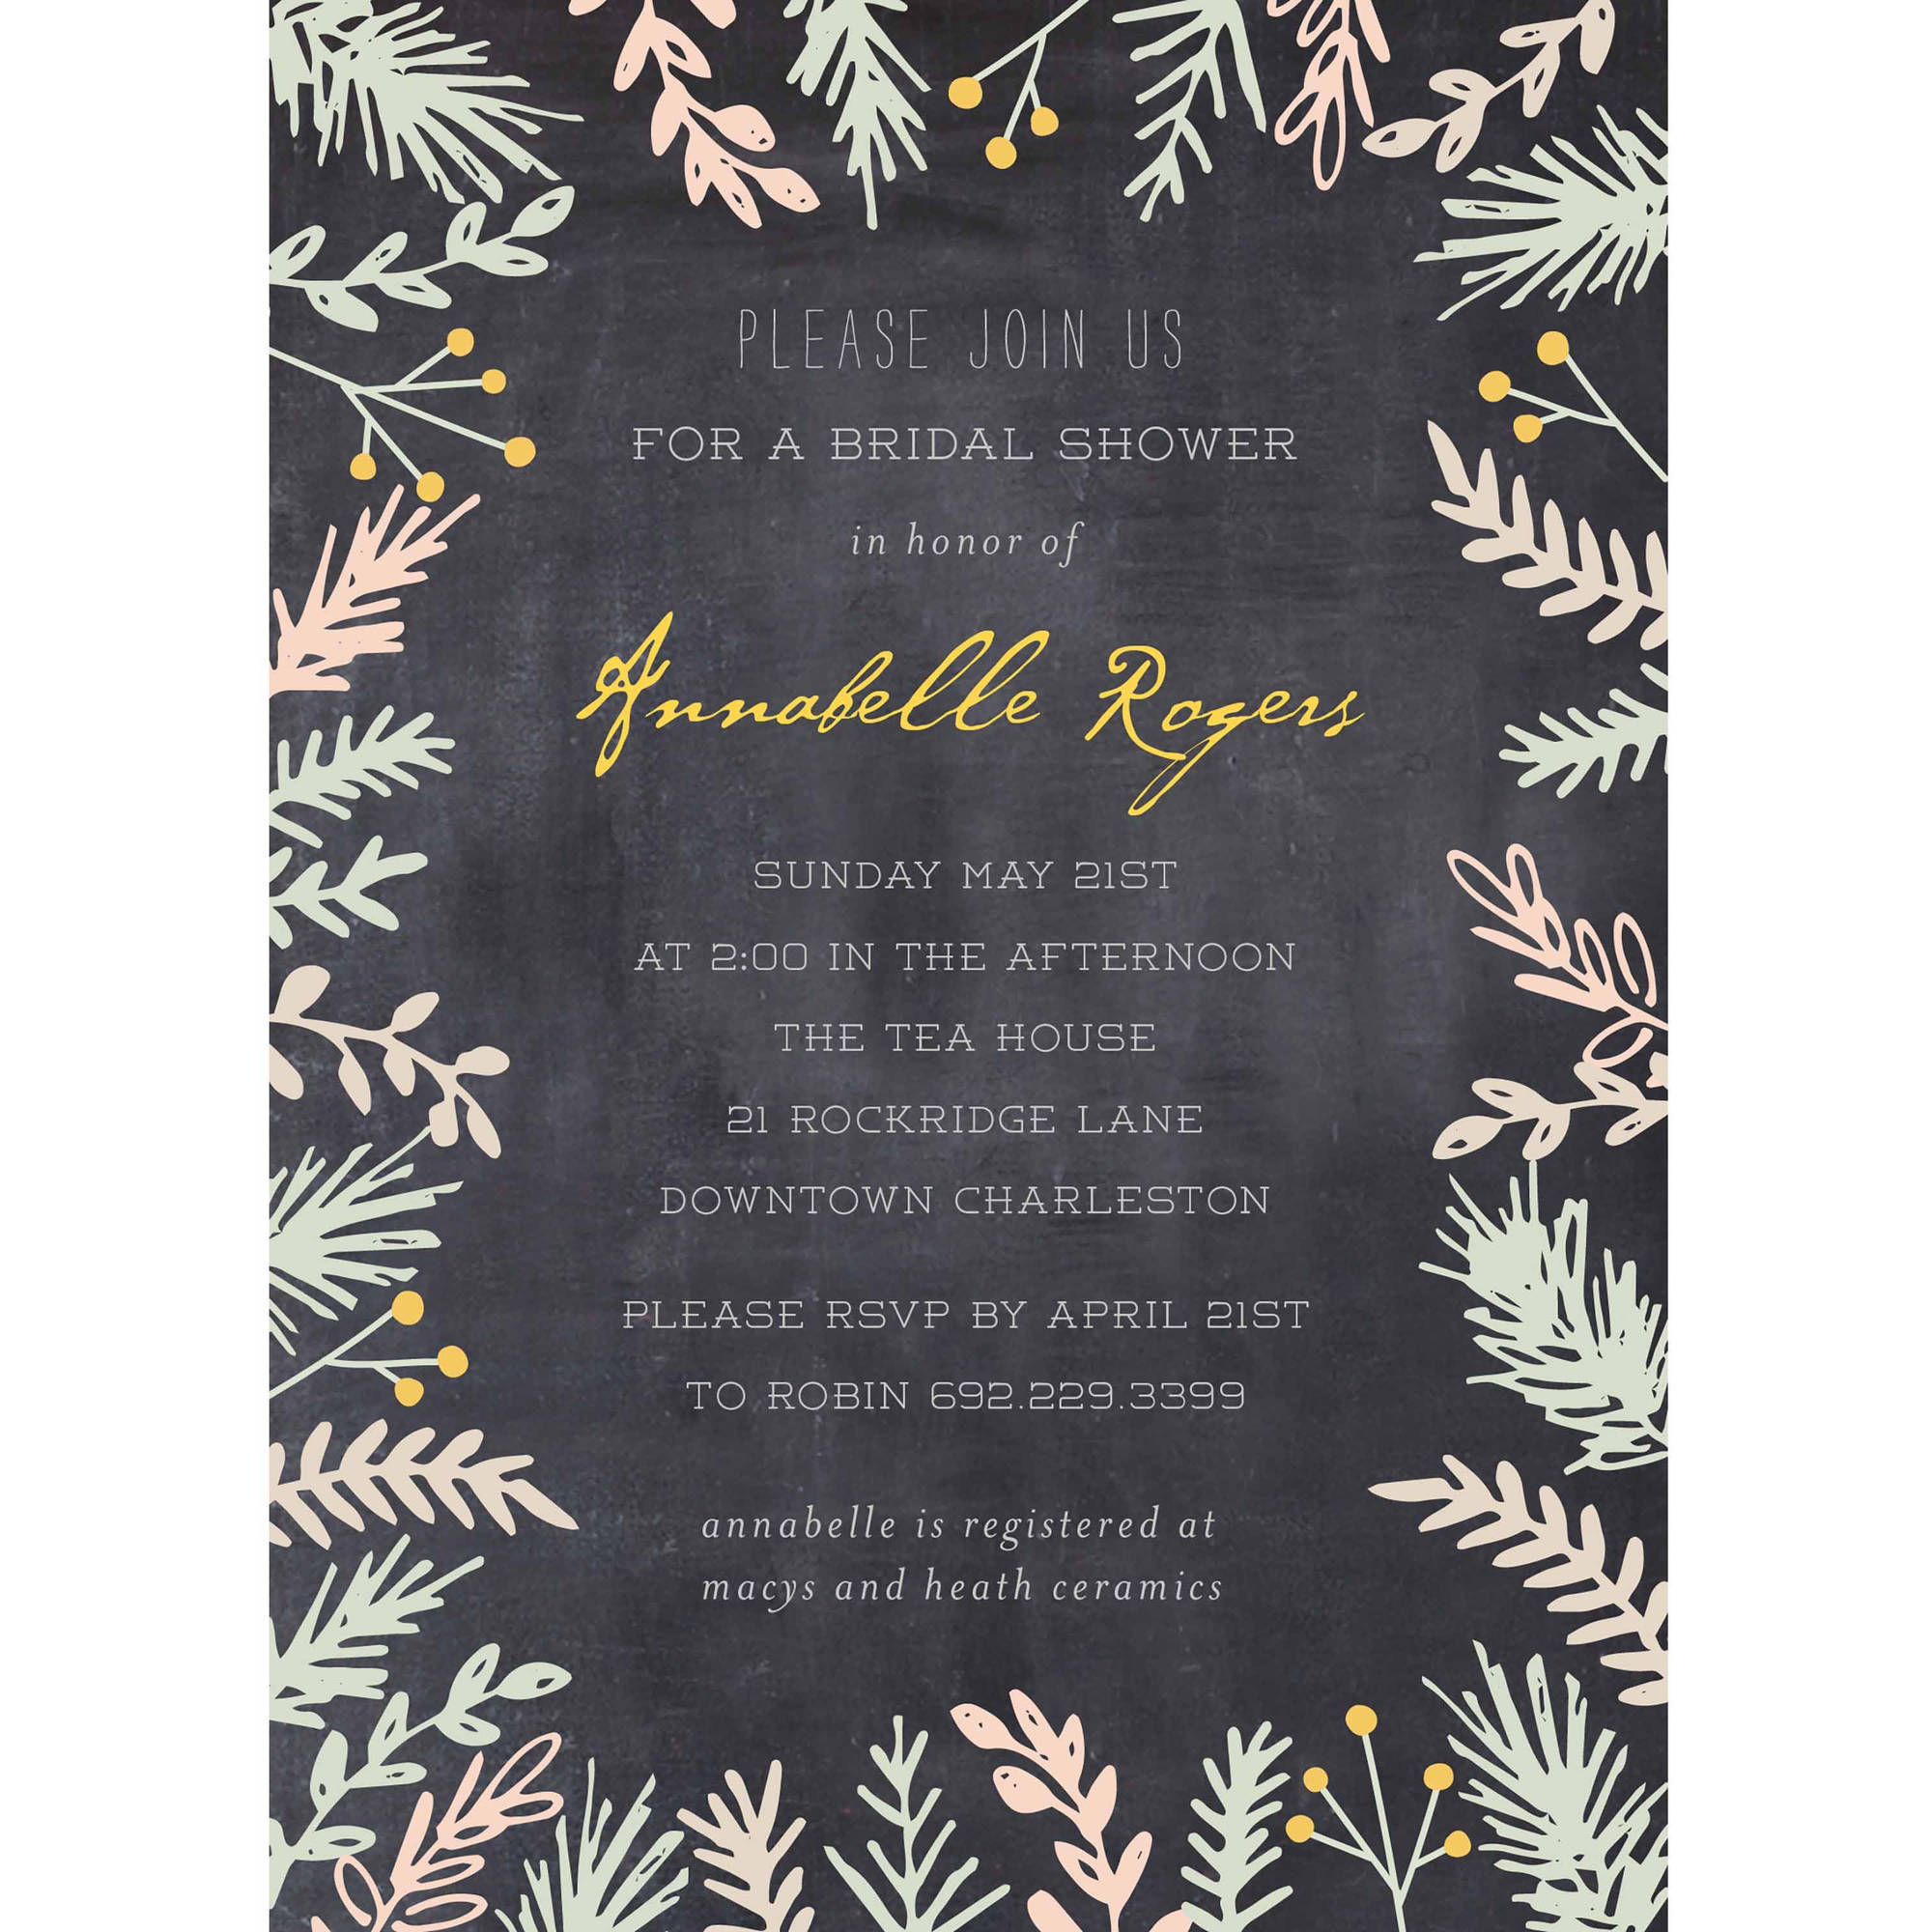 Bride Botanical Standard Bridal Shower Invitation